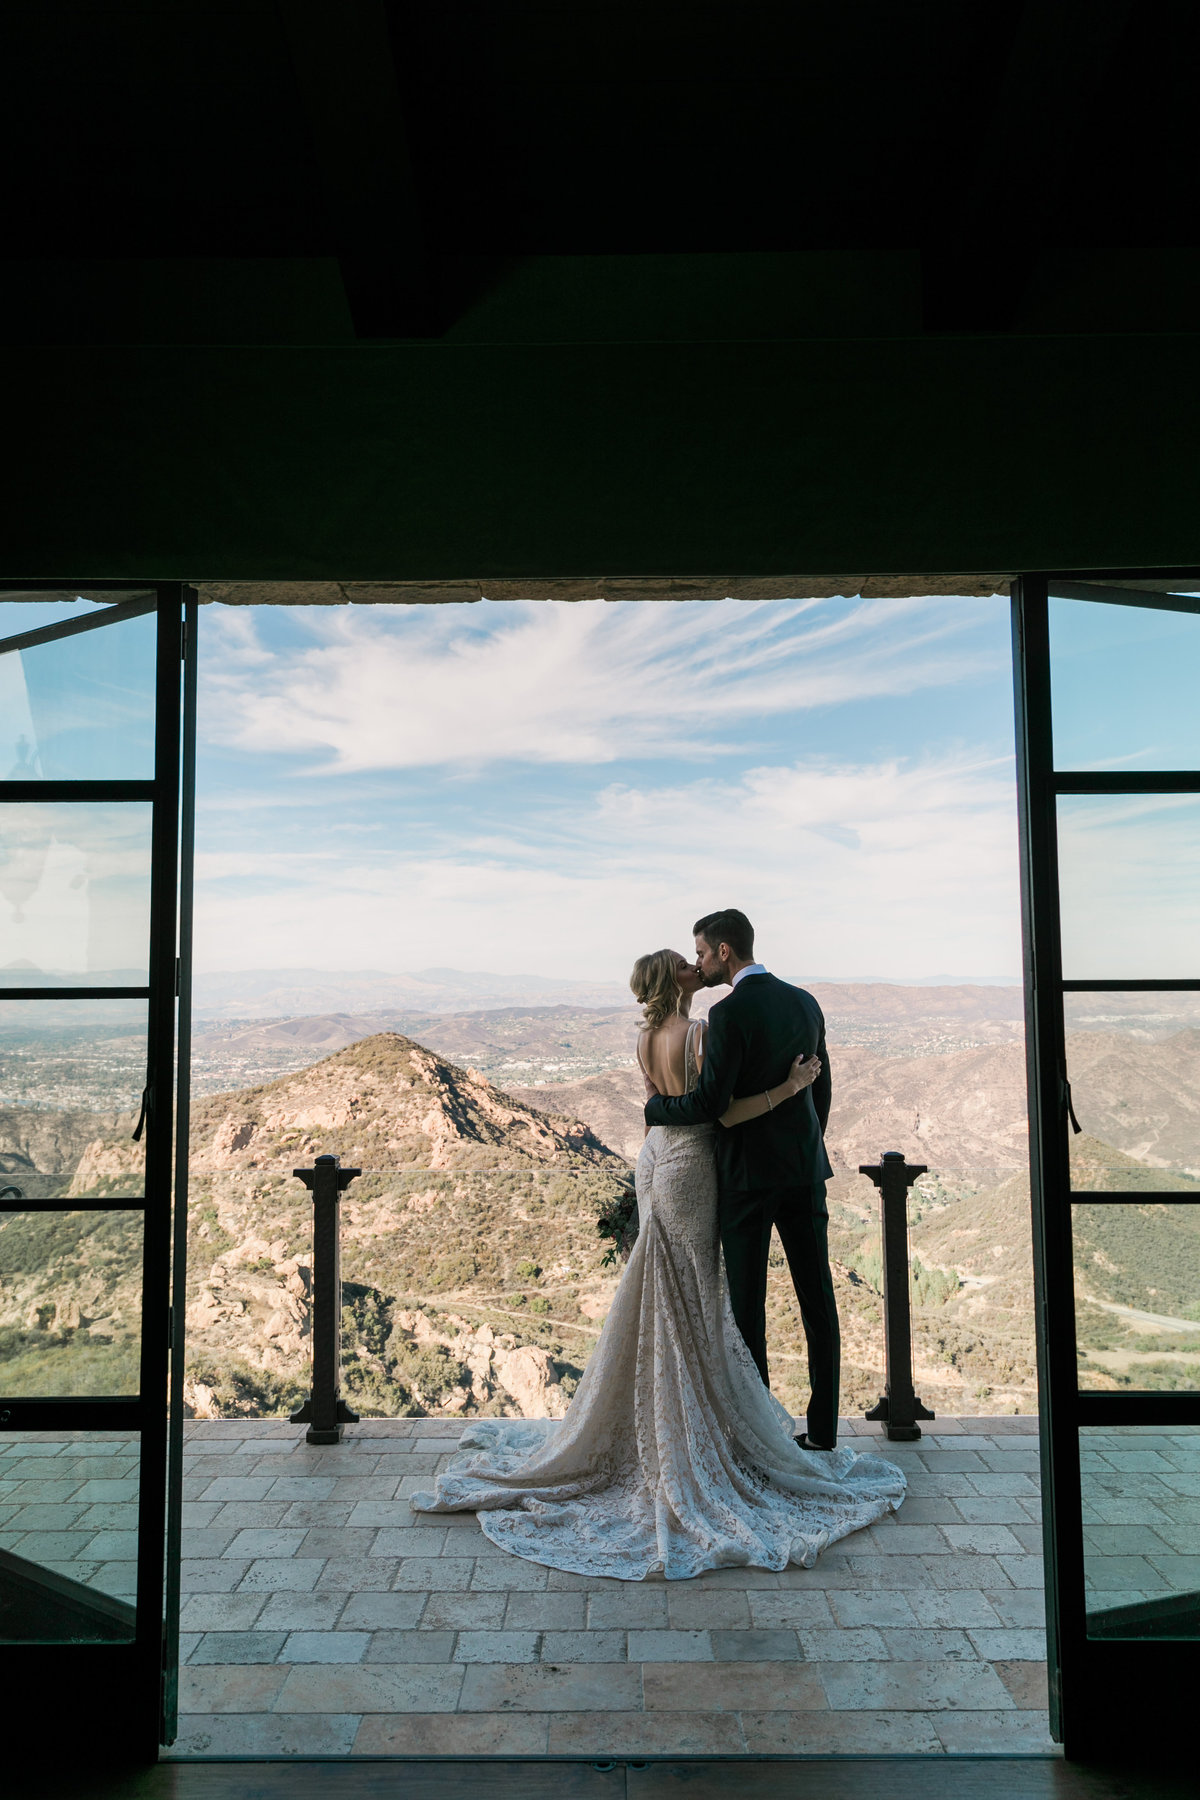 Malibu_Rocky_Oaks_Wedding_Inbal_Dror_Valorie_Darling_Photography - 61 of 160